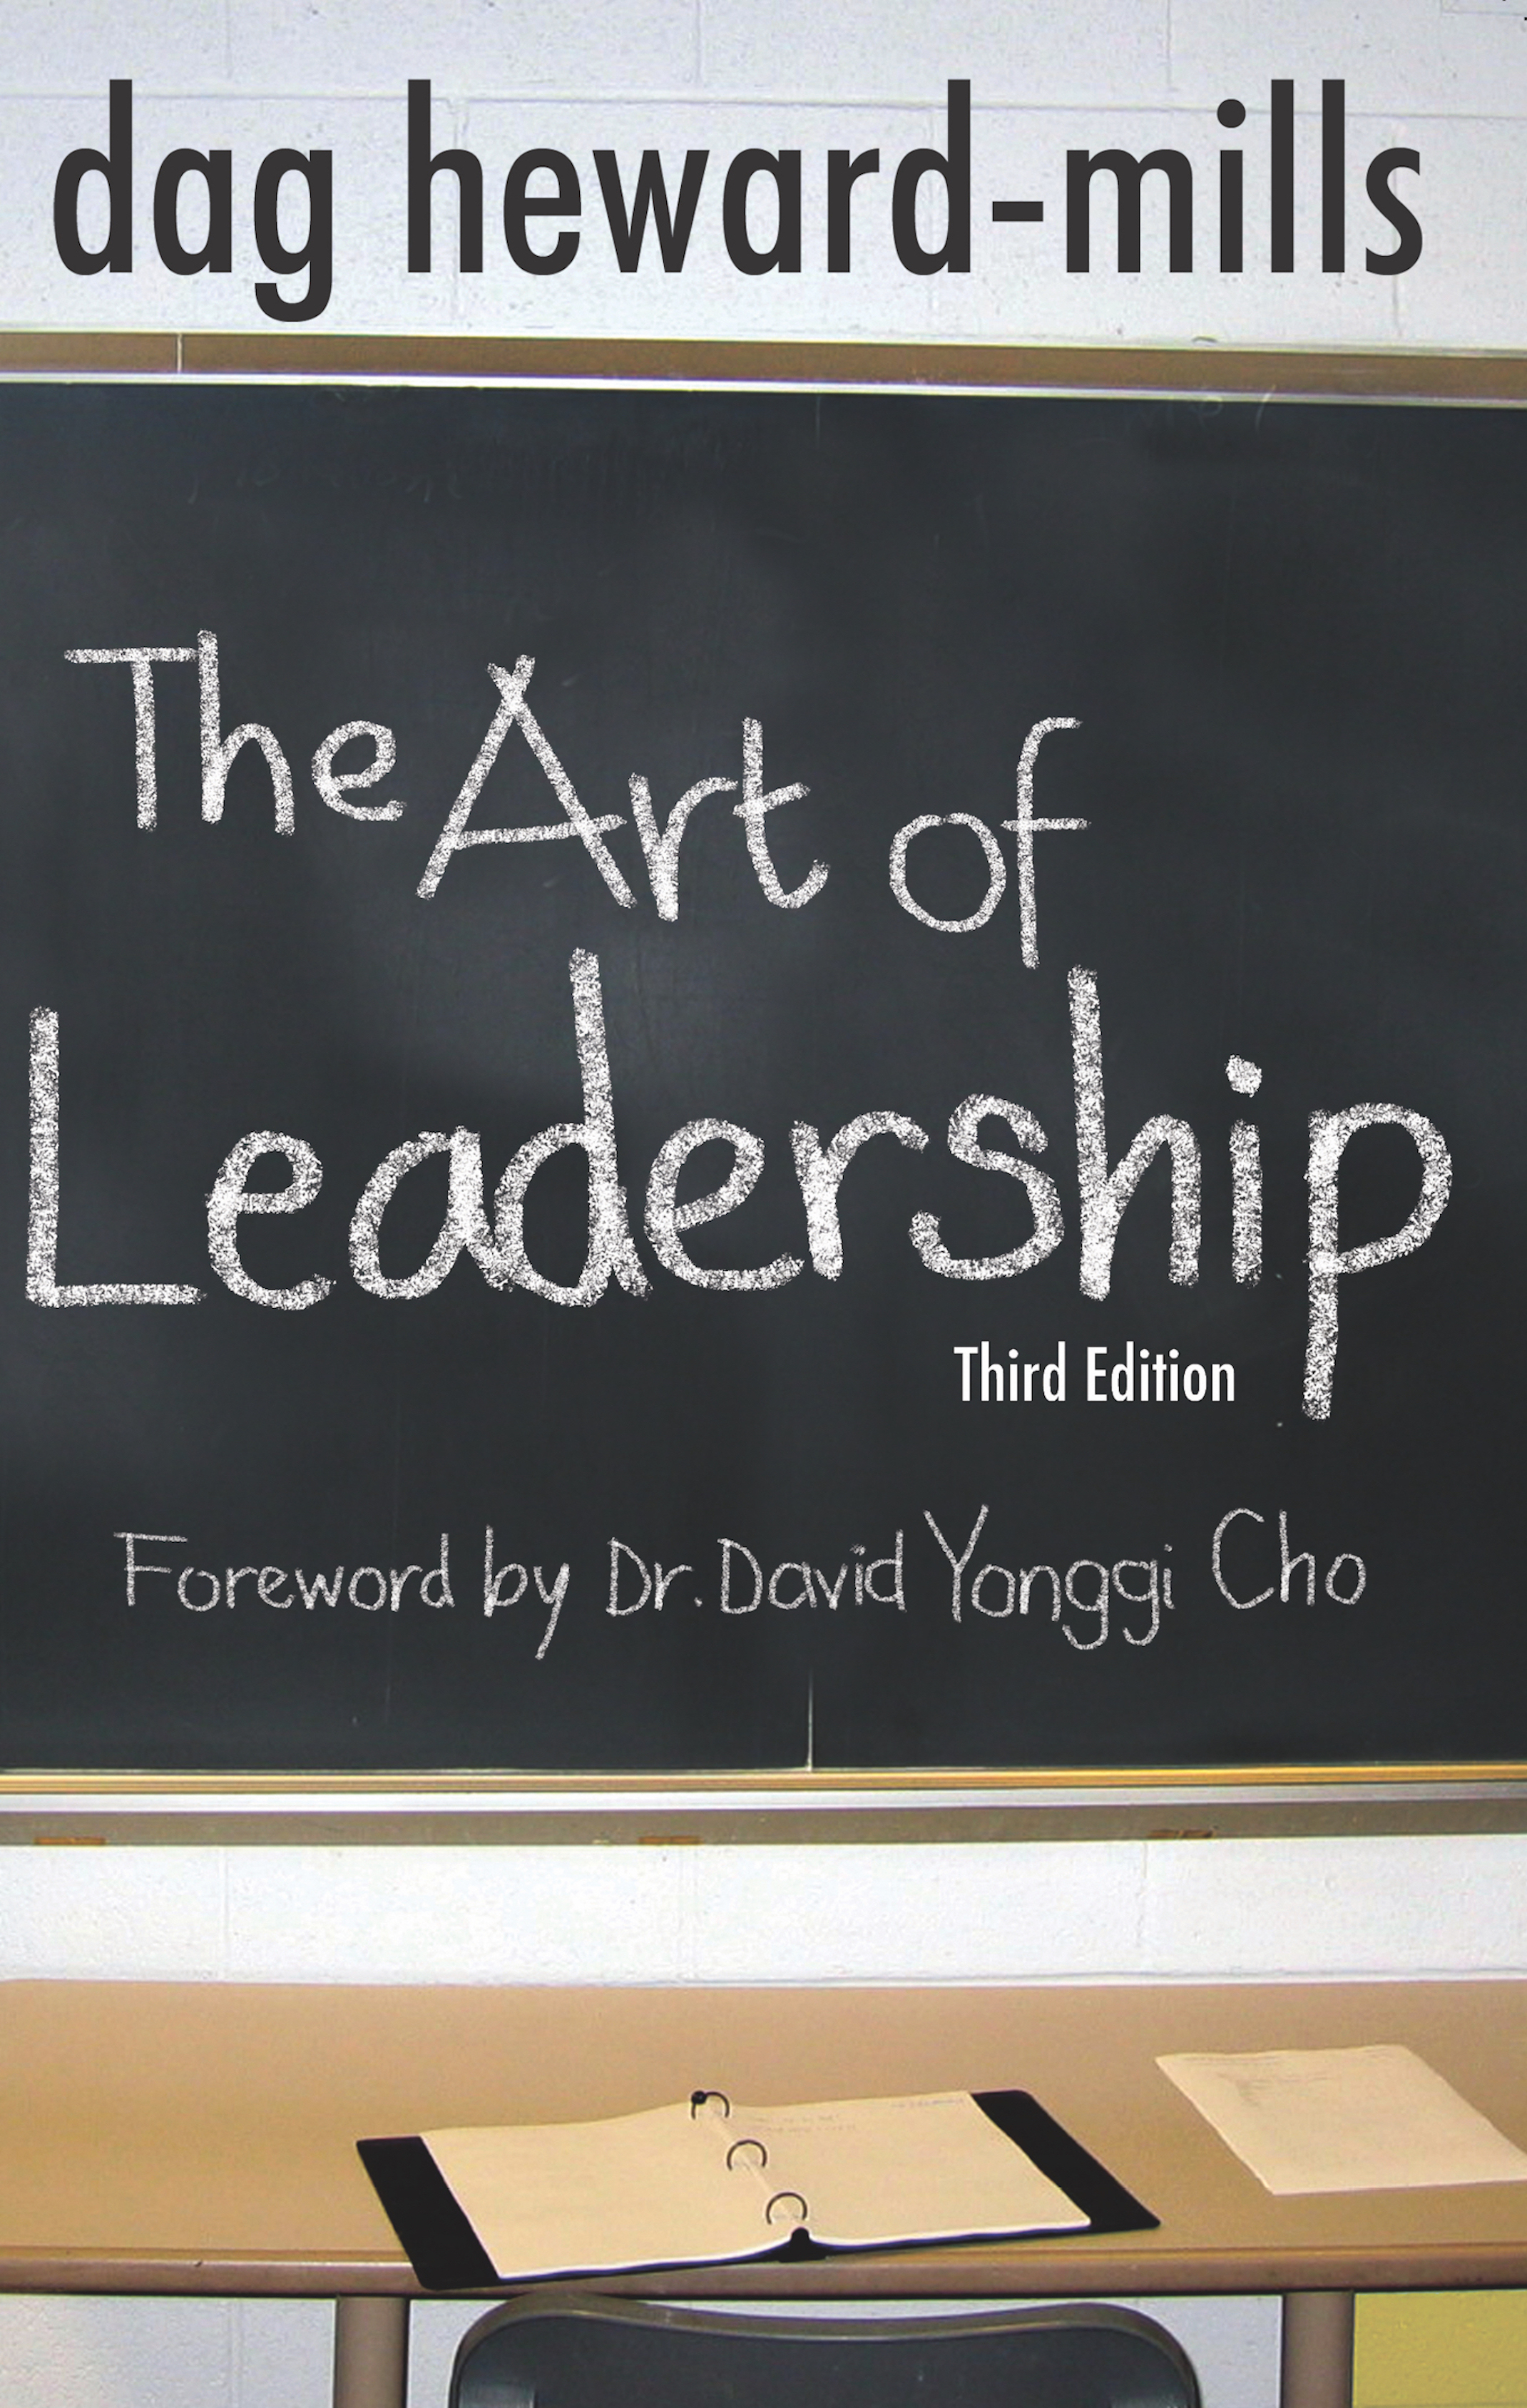 The Art of Leadership - 3rd Edition, an Ebook by Dag Heward-Mills